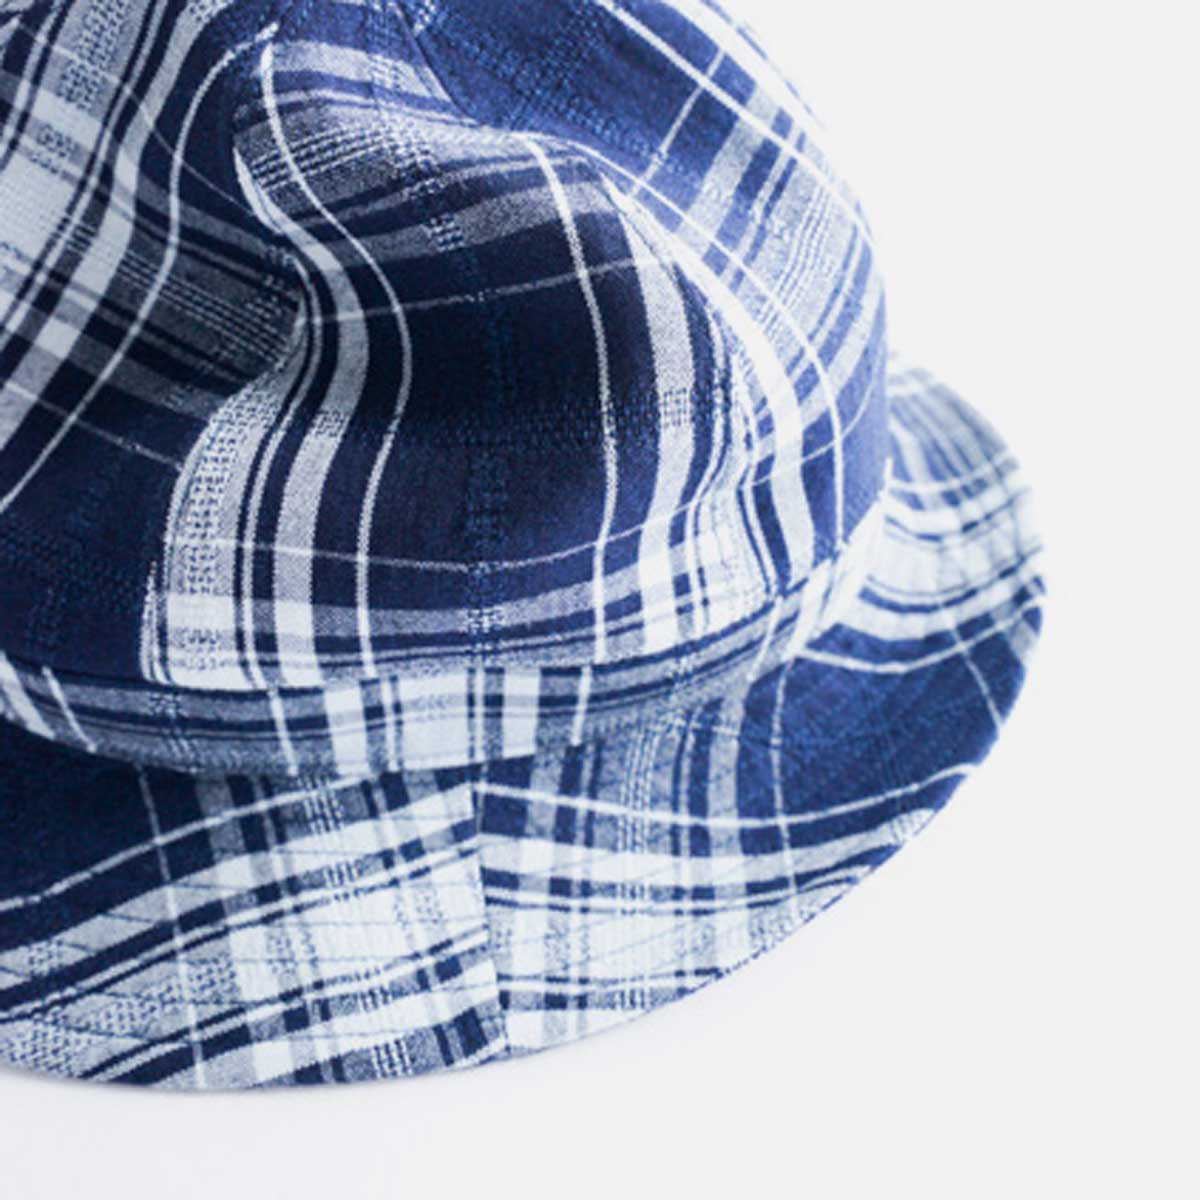 niuhans  Cotton Flannel Baseball Cap (Navy)3